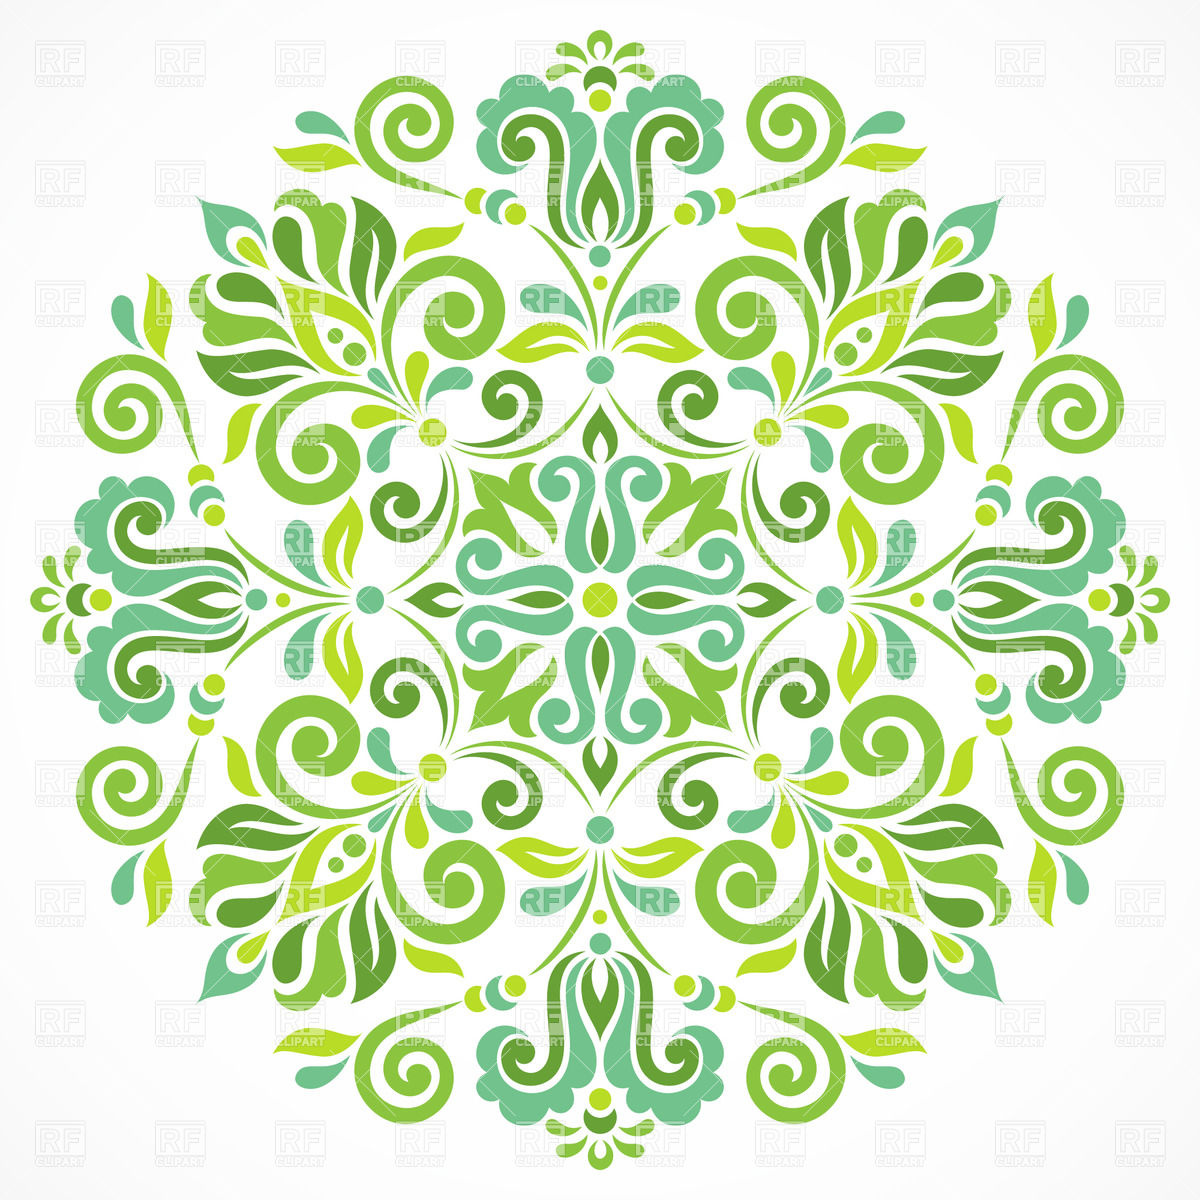 Green round graphic ornament Vector Image #28841.